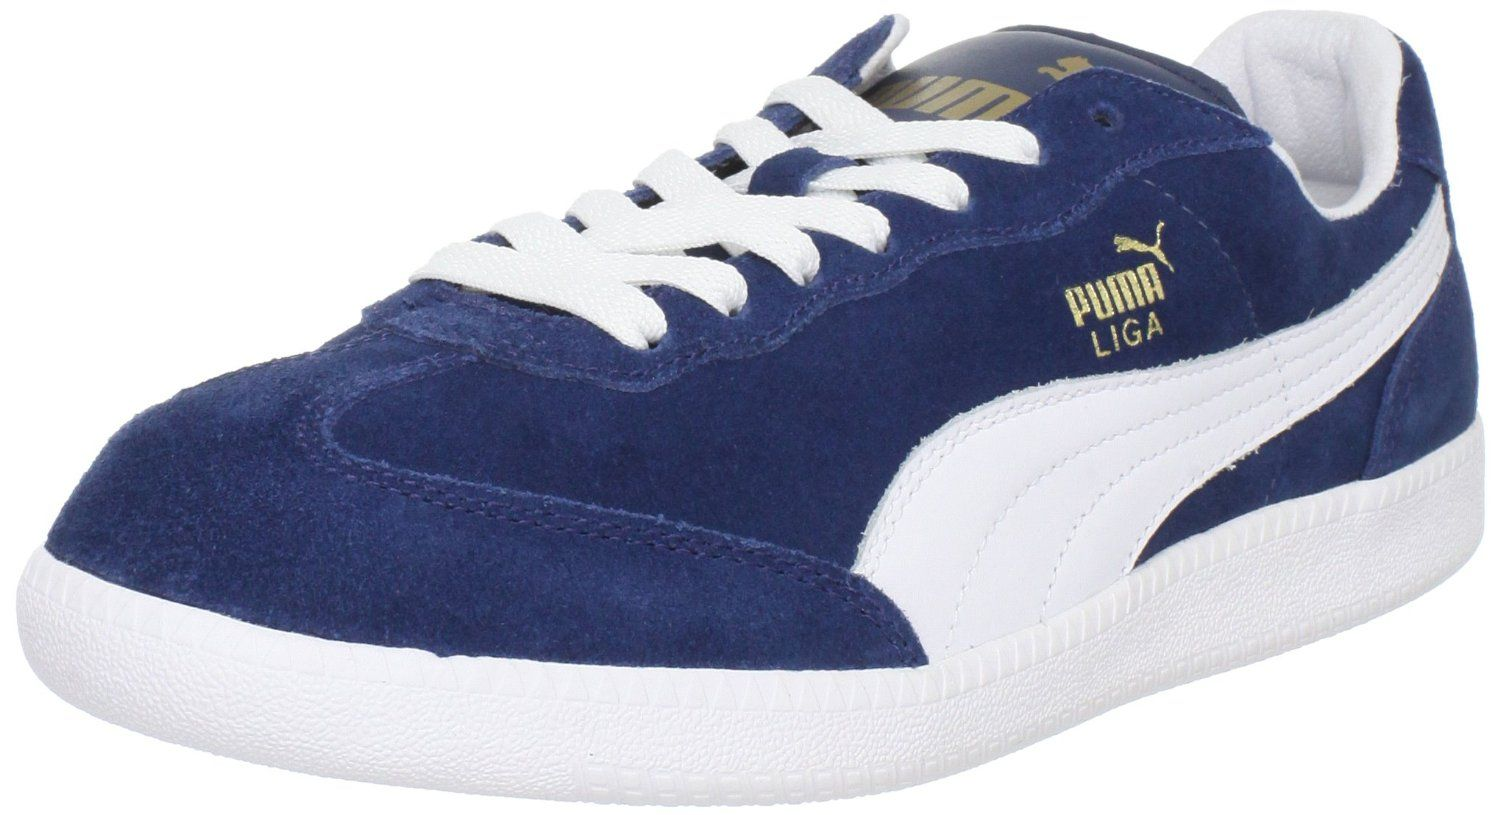 Unisex Shoes PUMA Liga Suede Classic Darm Denim/White